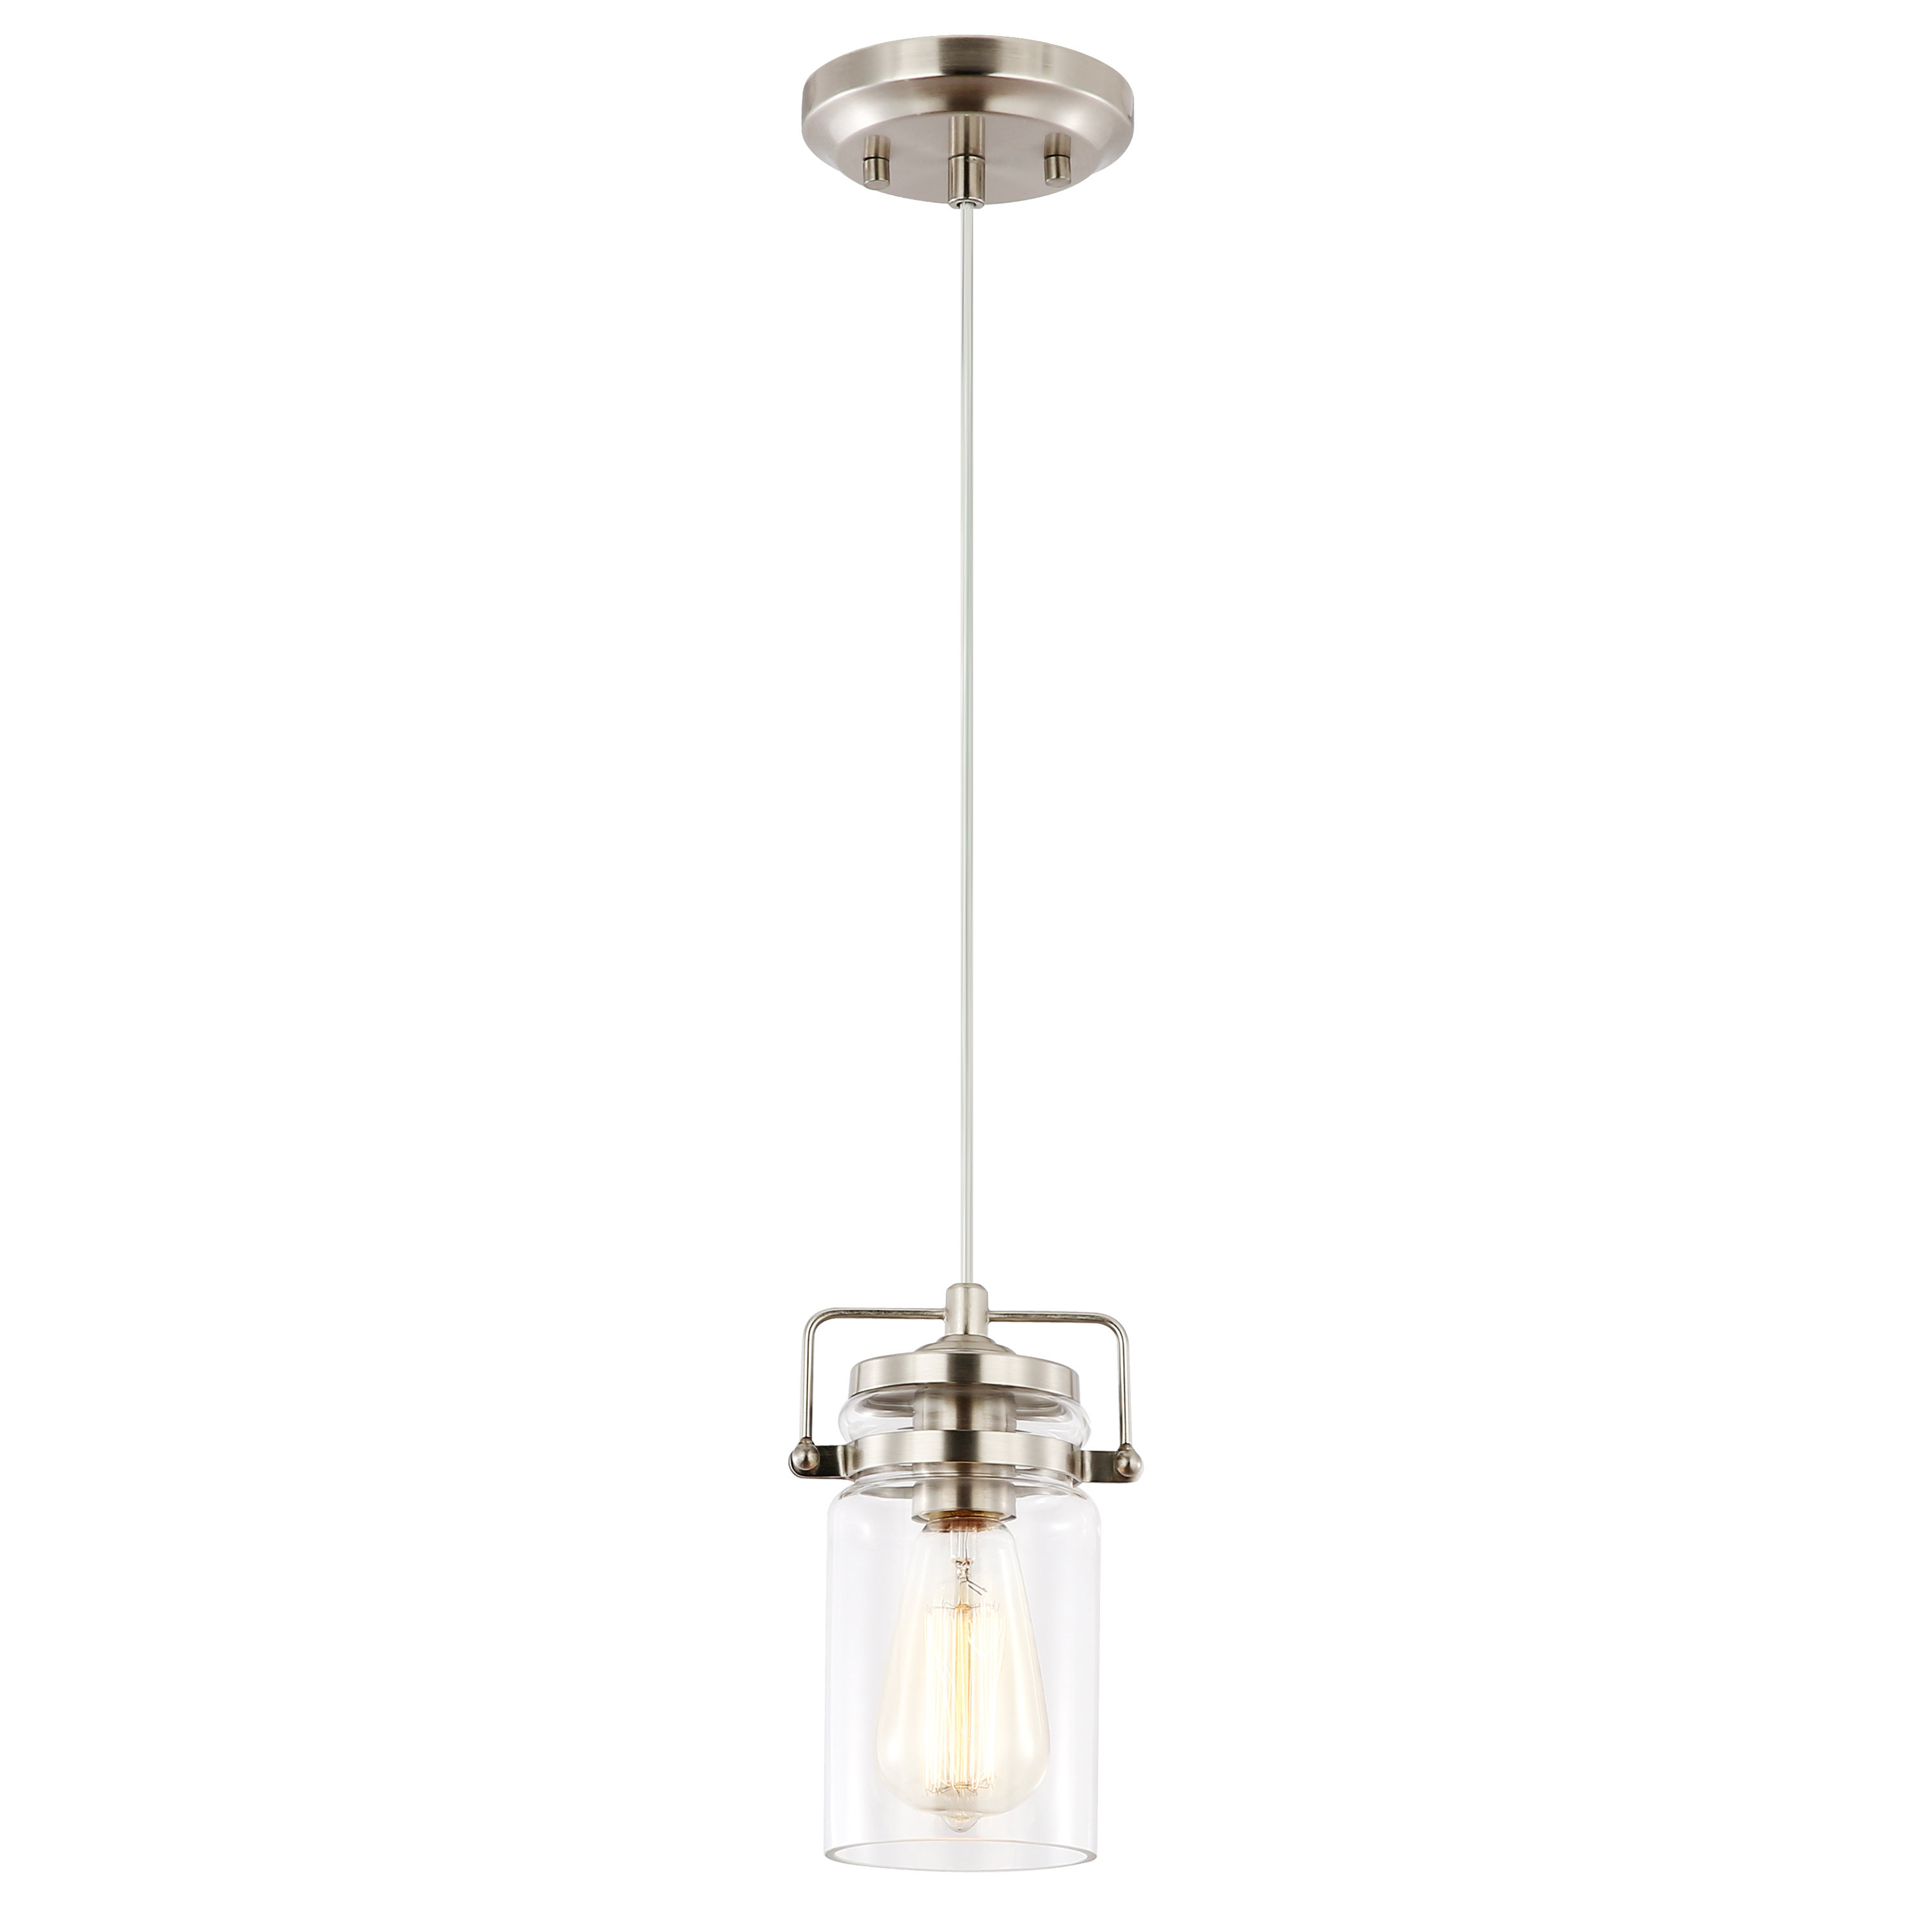 Best And Newest Mistretta 1 Light Single Jar Pendant In Houon 1 Light Cone Bell Pendants (Gallery 20 of 20)